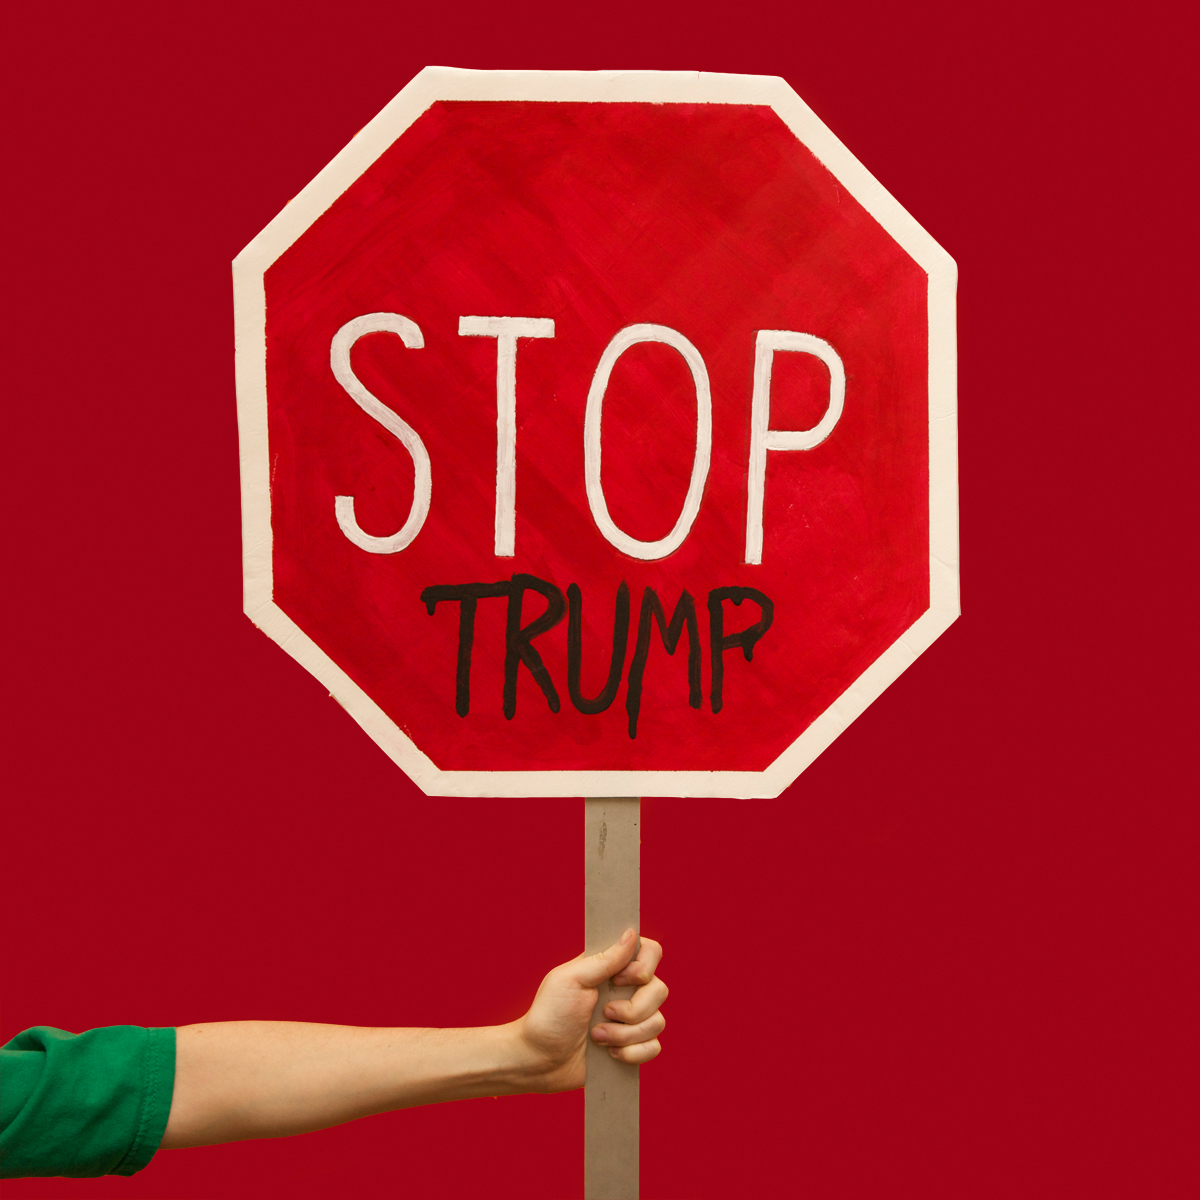 45 Protest Signs_Brandon and Olivia Locher_32_STOP